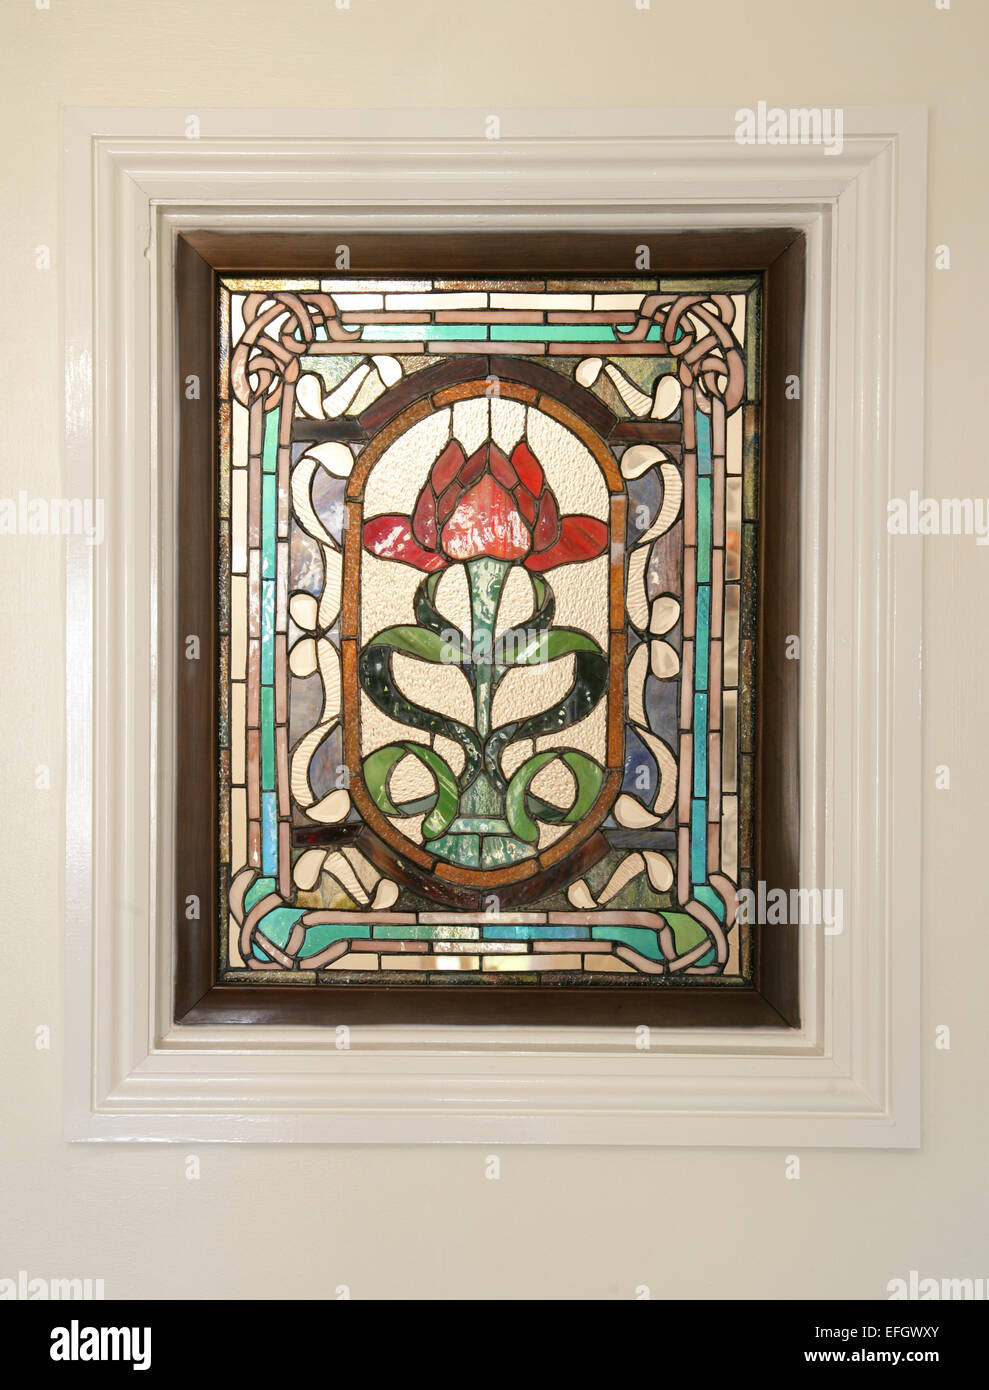 rose stain glass window in a frame - Stock Image